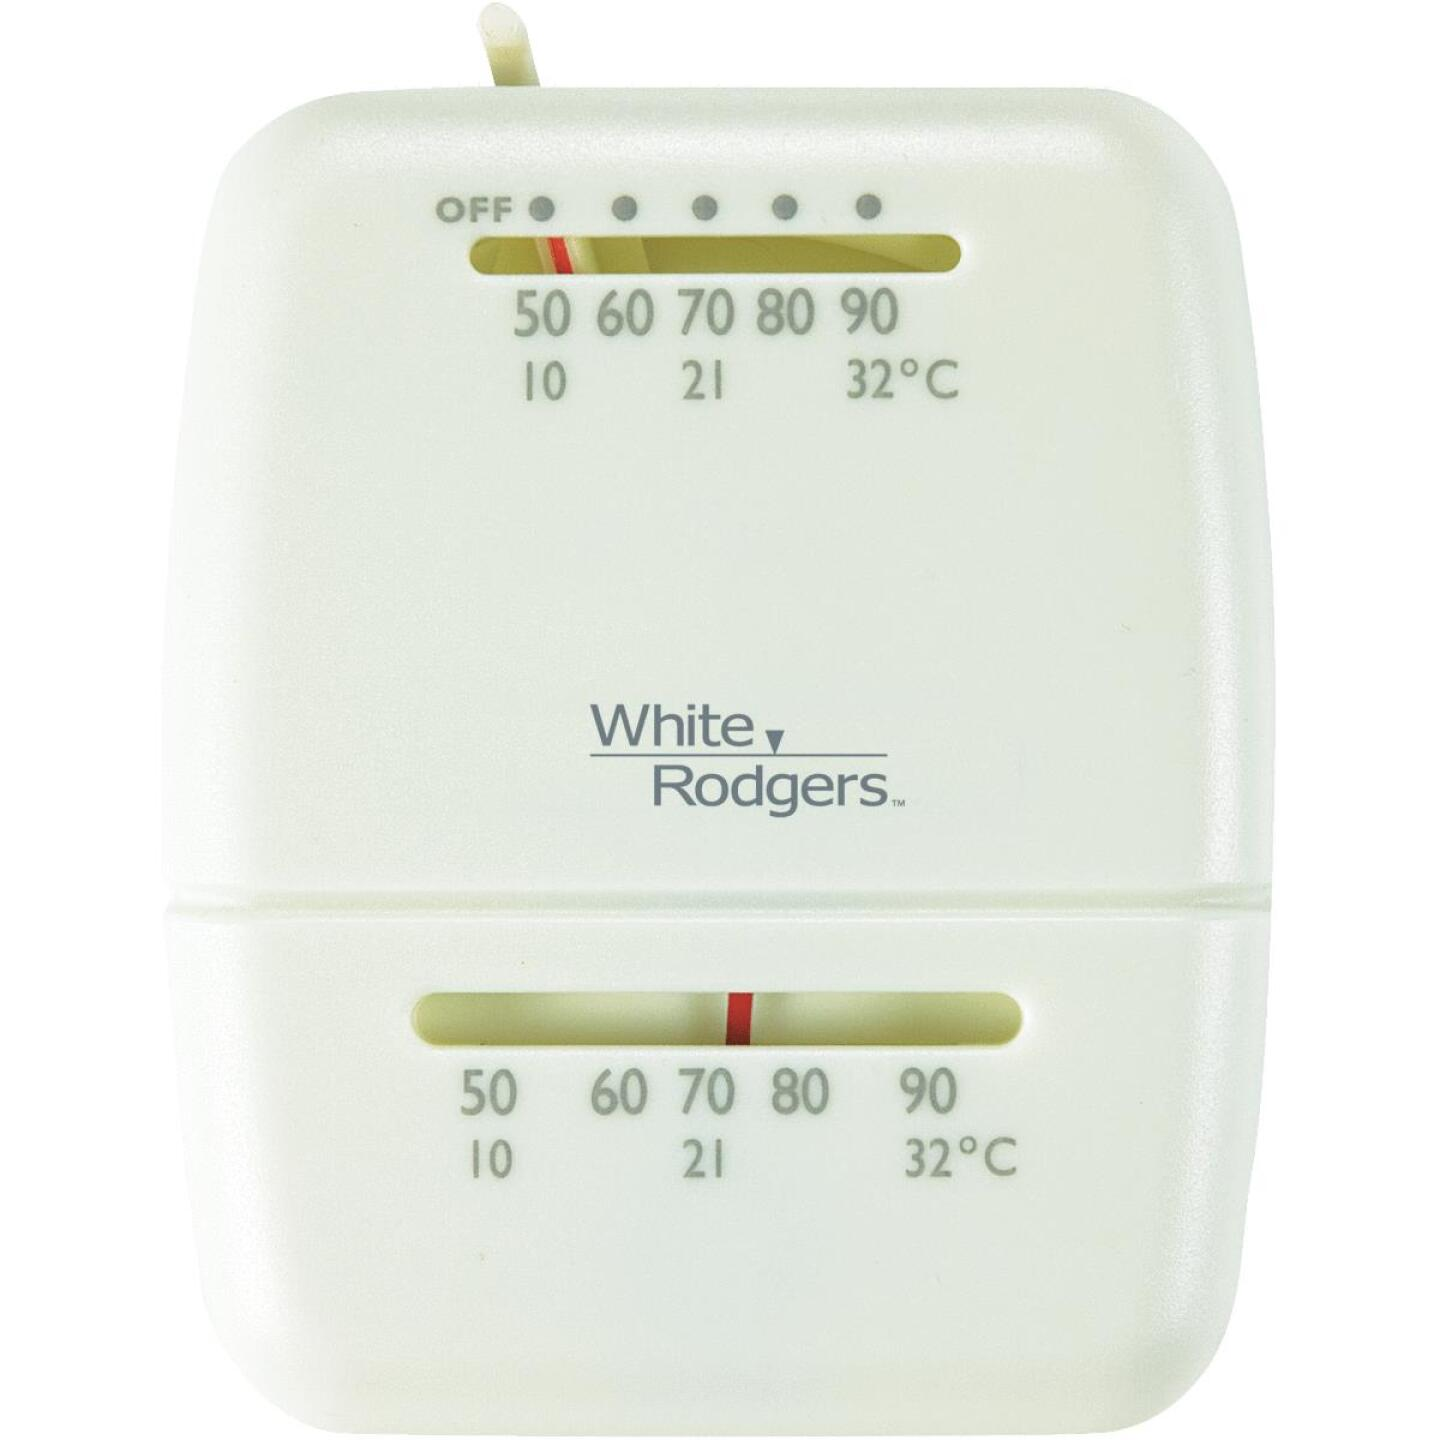 White Rodgers 24V Off-White Mechanical Thermostat Image 1